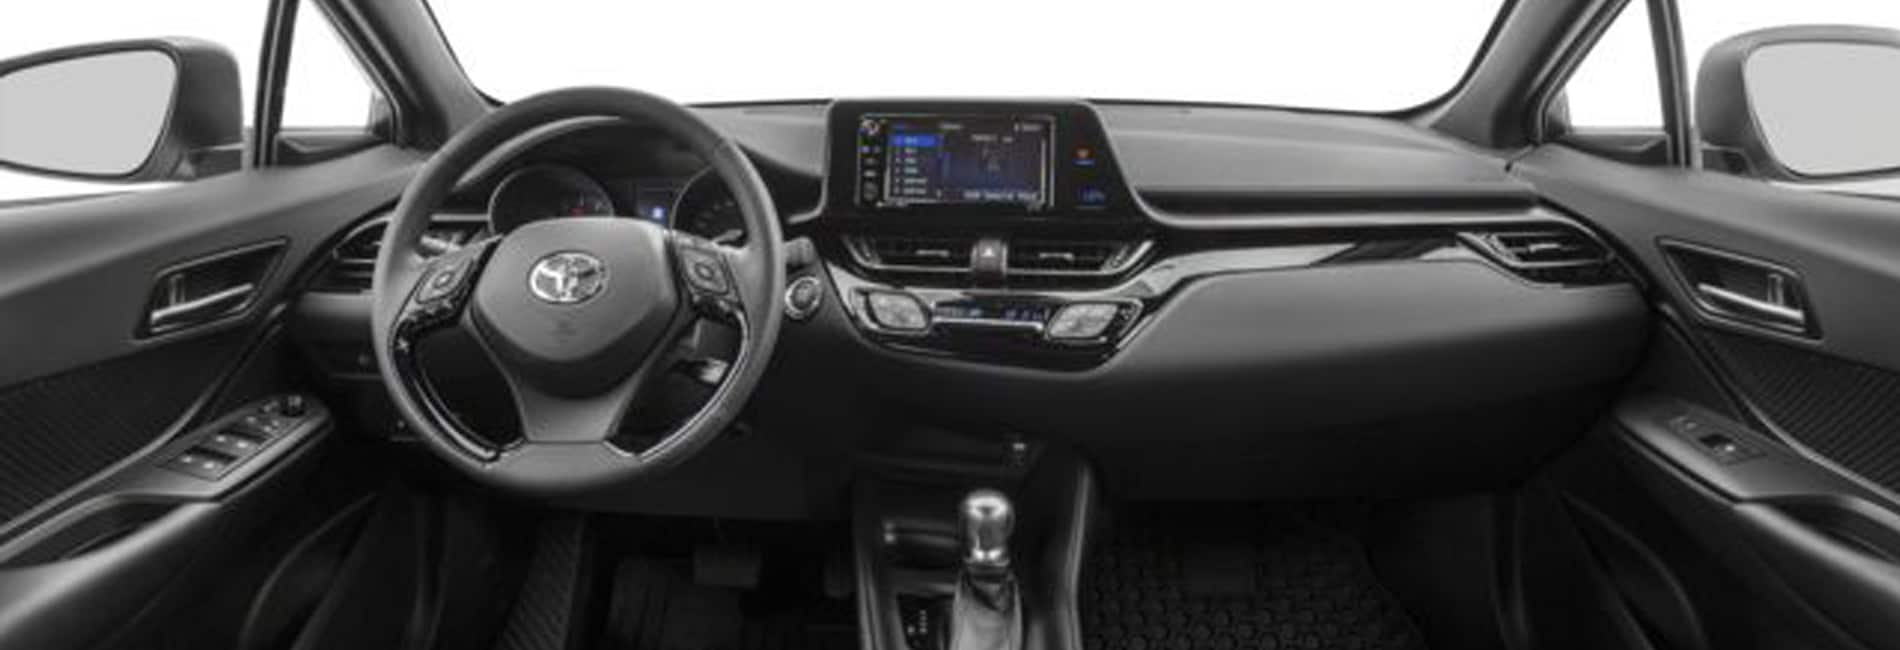 Toyota C-HR Interior Vehicle Features